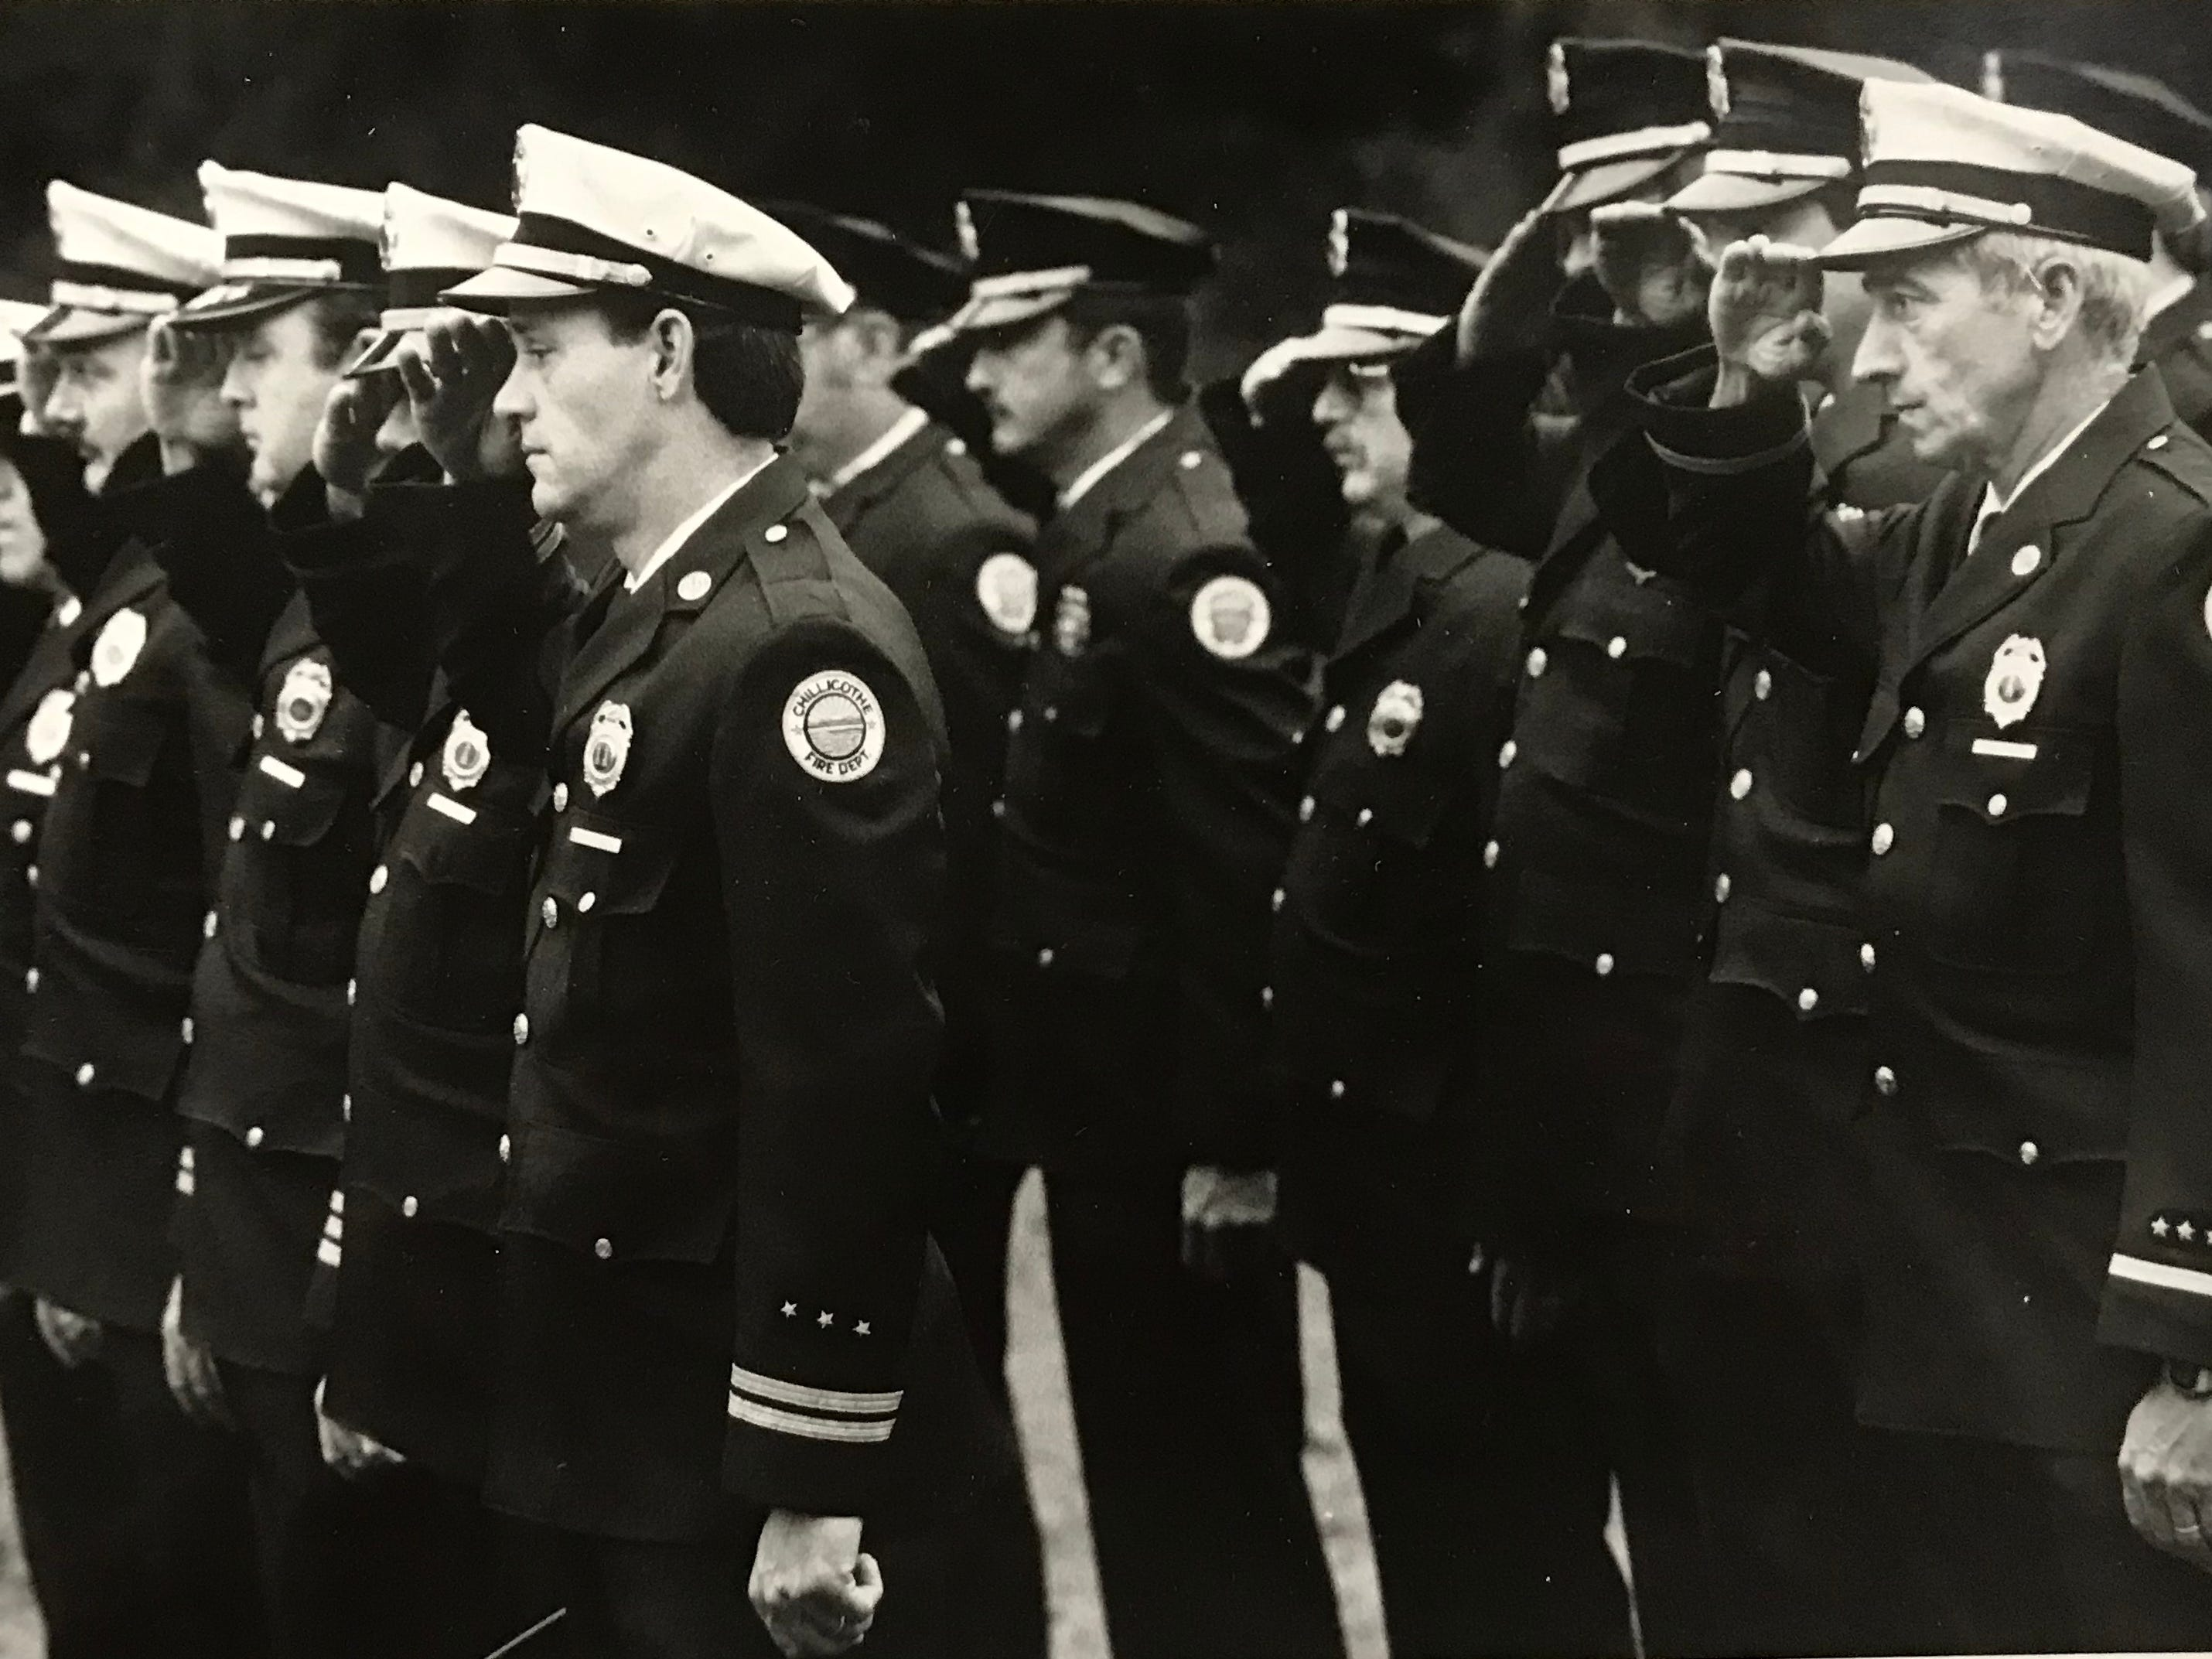 In October 1987, Chillicothe Fire Department Capt. Gordon Bauer, left, and Lt. Ronald Davis join other firefighters during the annual memorial service at the fire fighters memorial in Yoctangee Park. The memorial has since been re-located to outside Station 1 on Water Street.